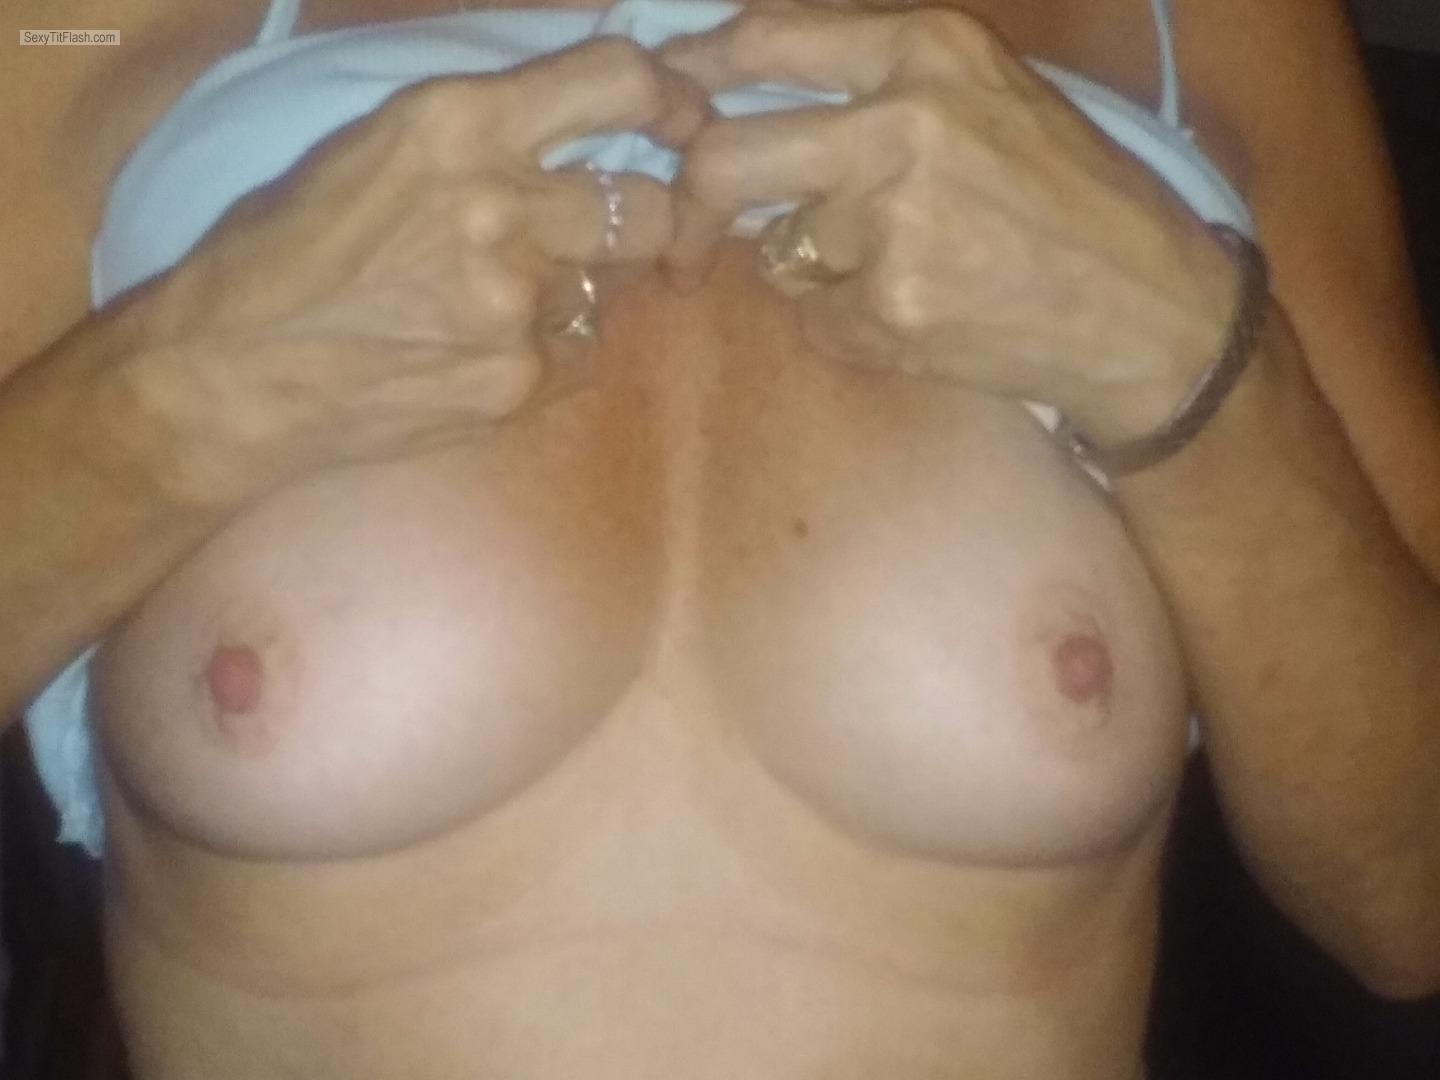 Tit Flash: My Friend's Tanlined Medium Tits - Angel from United States